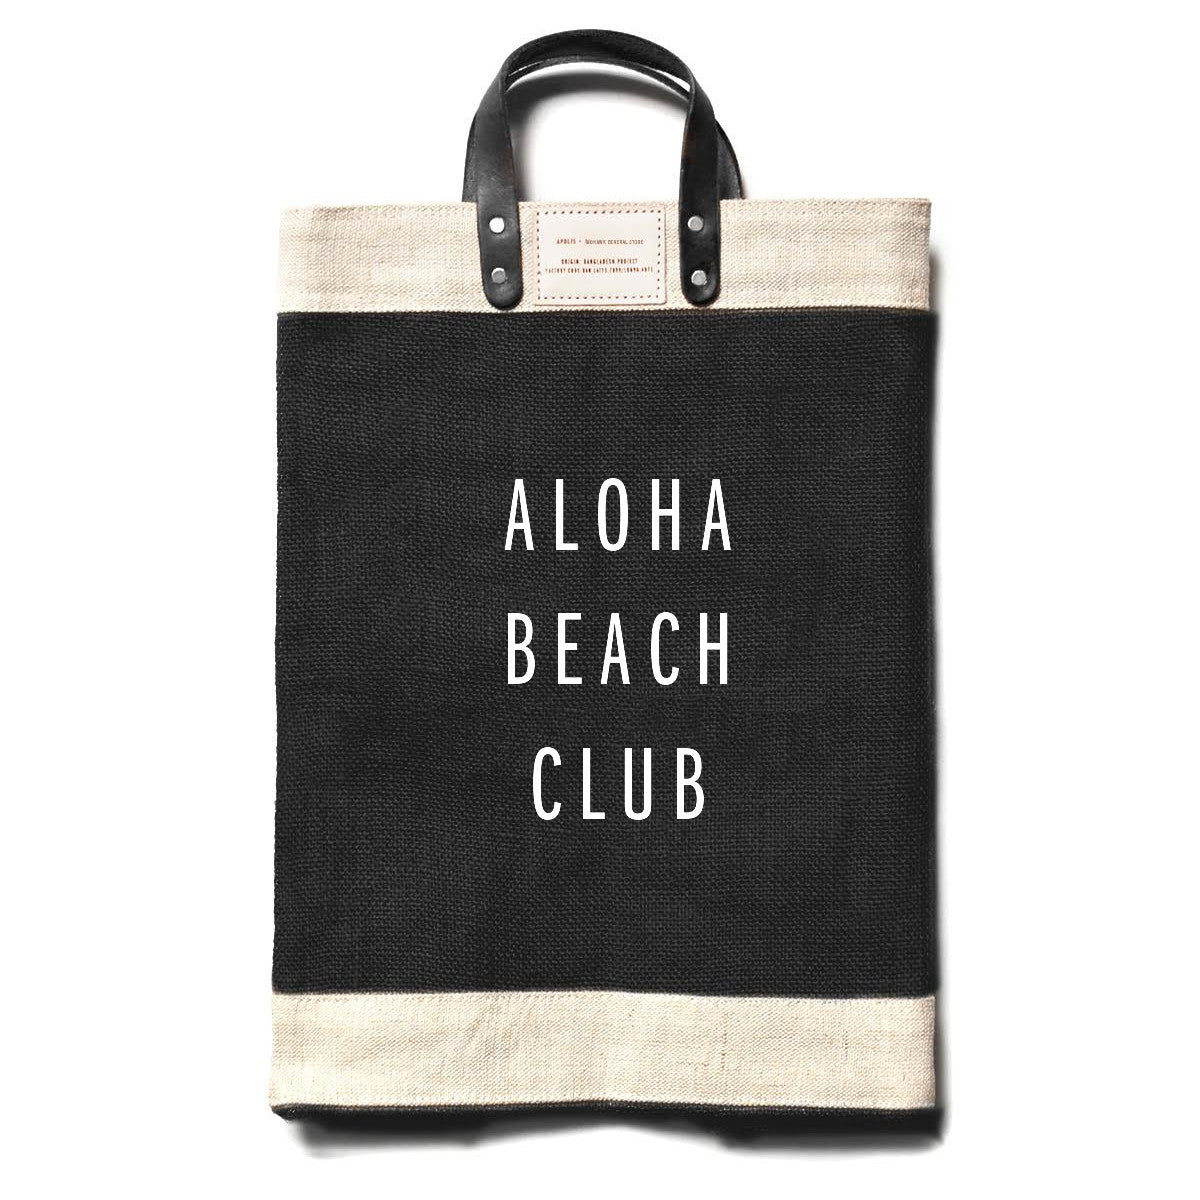 Apolis + Aloha Beach Club - Black Market Bag - Aloha Beach Club